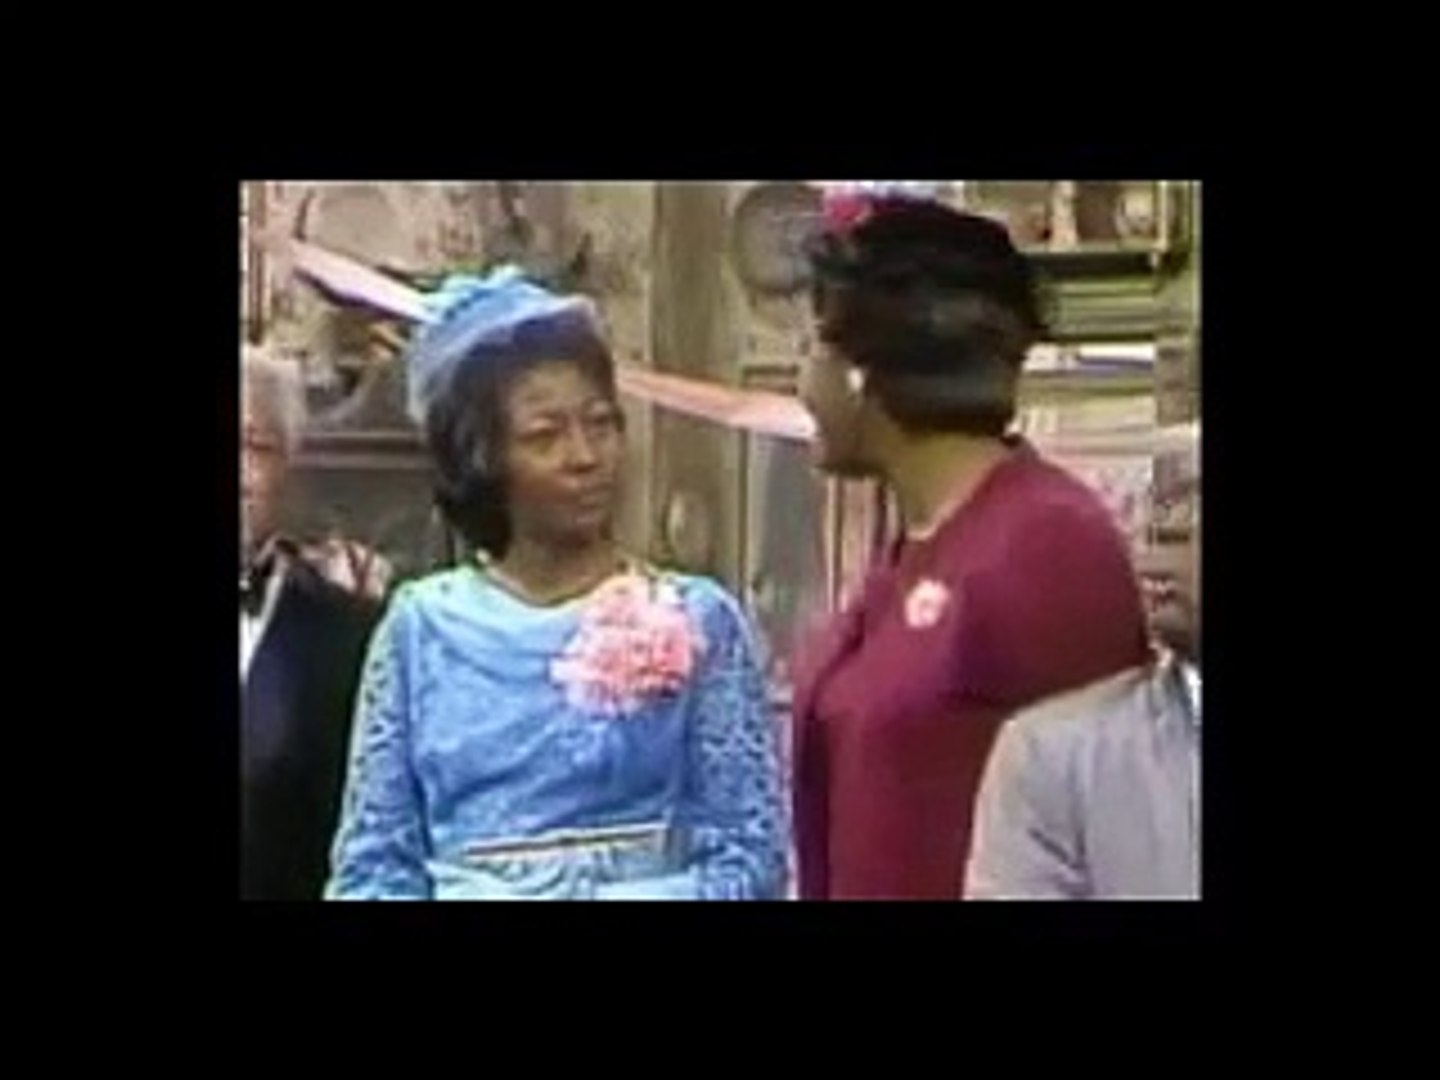 Sanford And Son Season 02 ep 11 Sanford & Son & Sister Makes Three